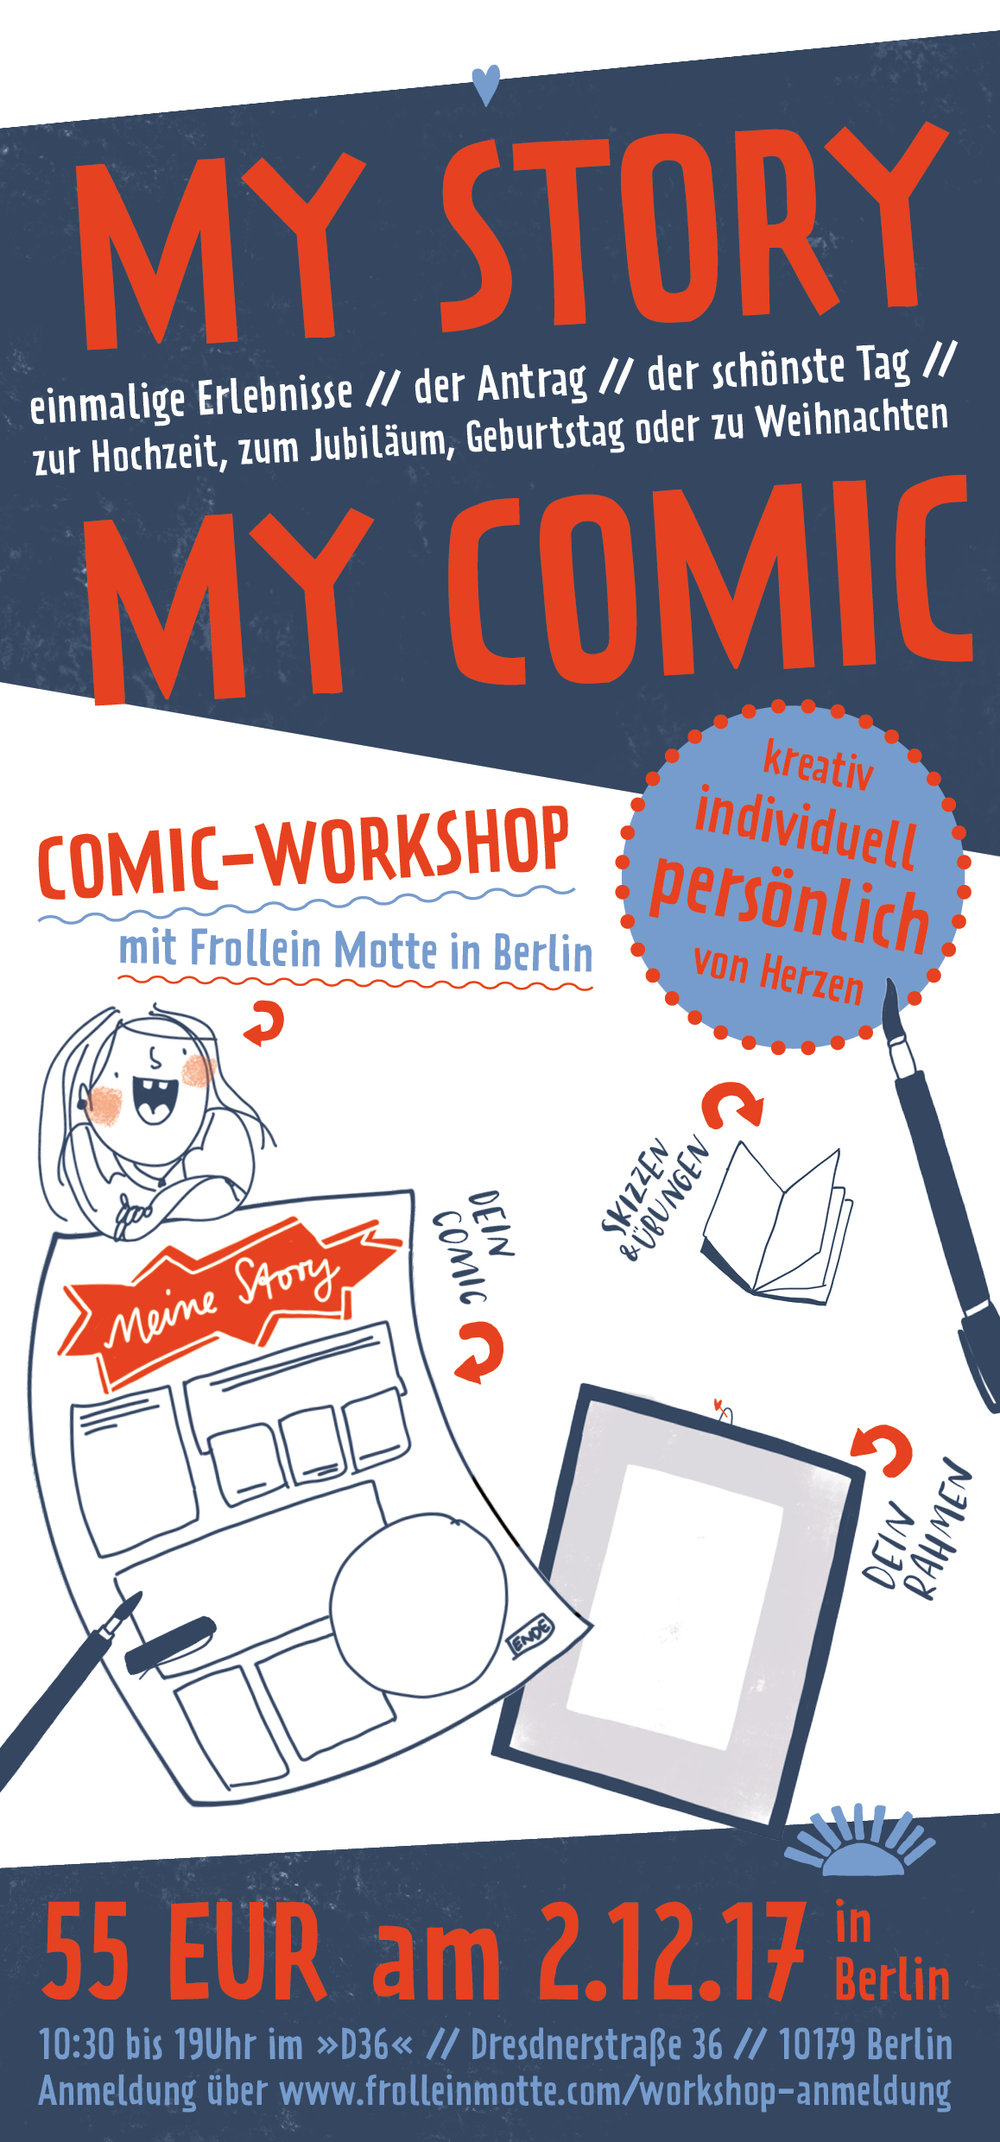 WS_werbung_comic-workshop_mystory2.jpg